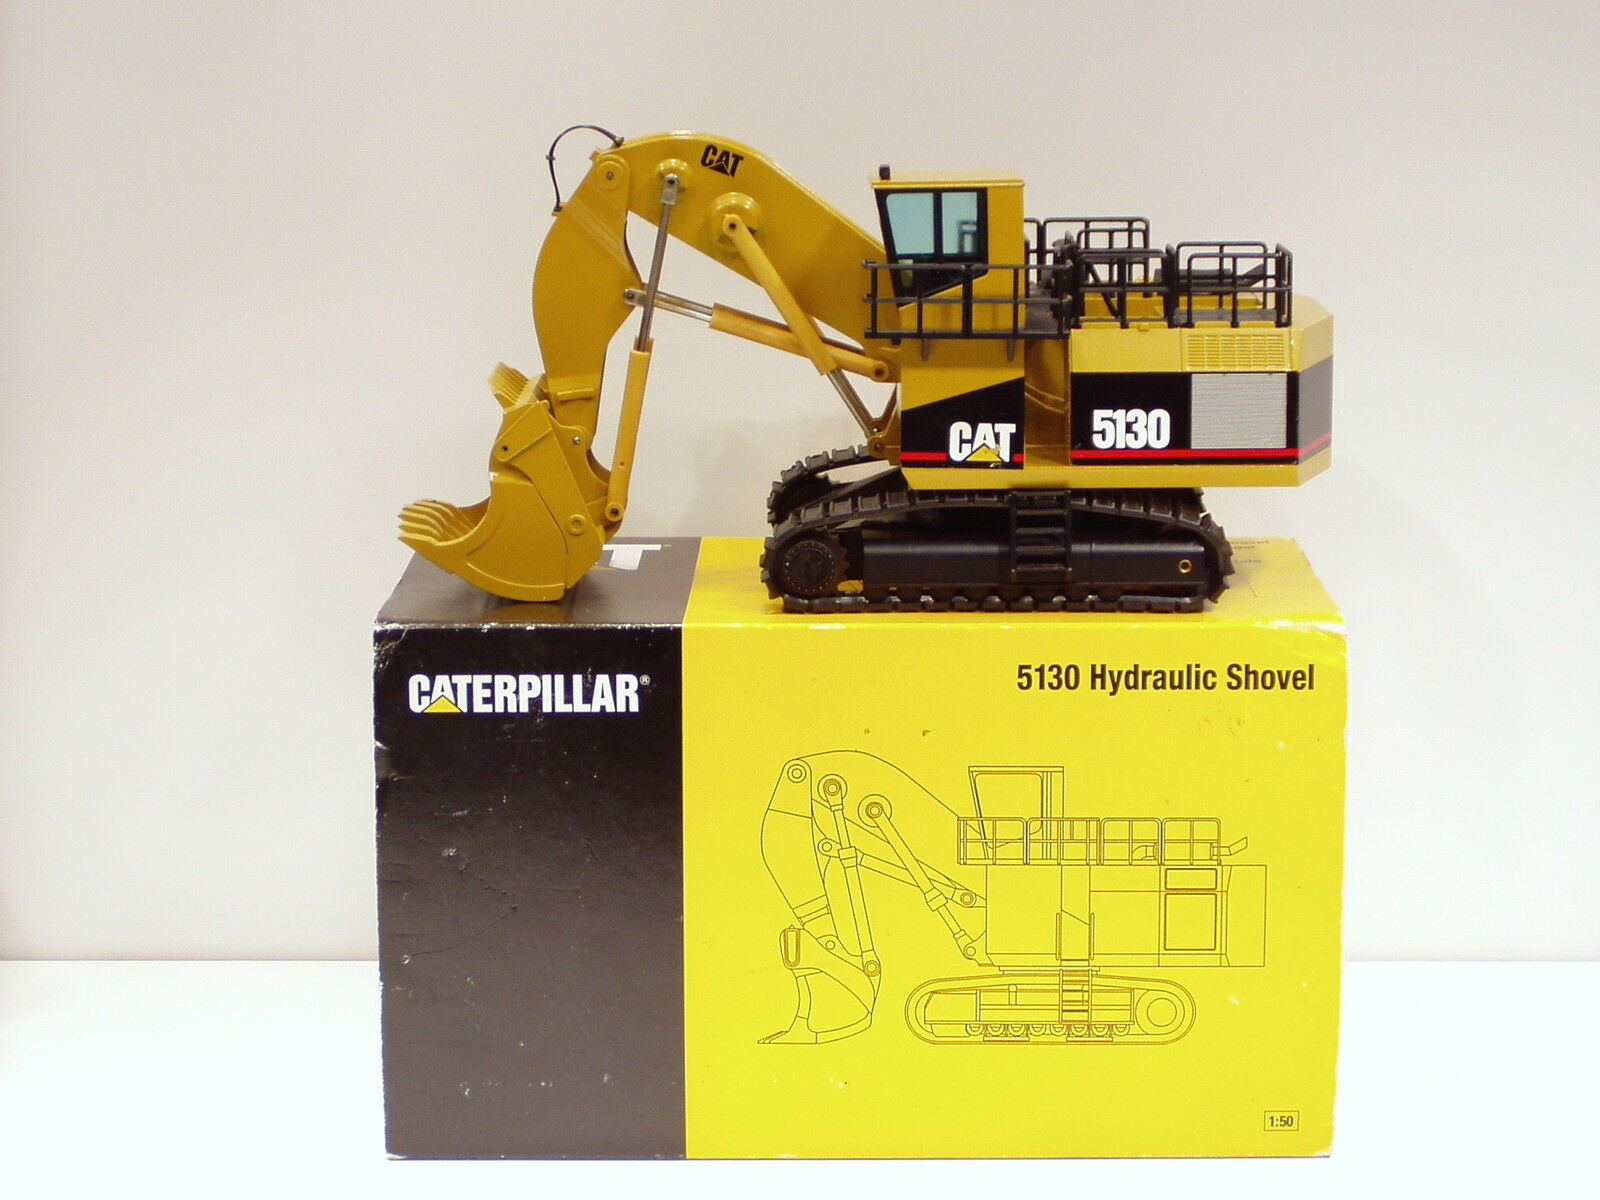 Caterpillar 5130 Pelle -  Lancement Edition  - 1 50 - NZG  391 - N. Comme neuf IN BOX